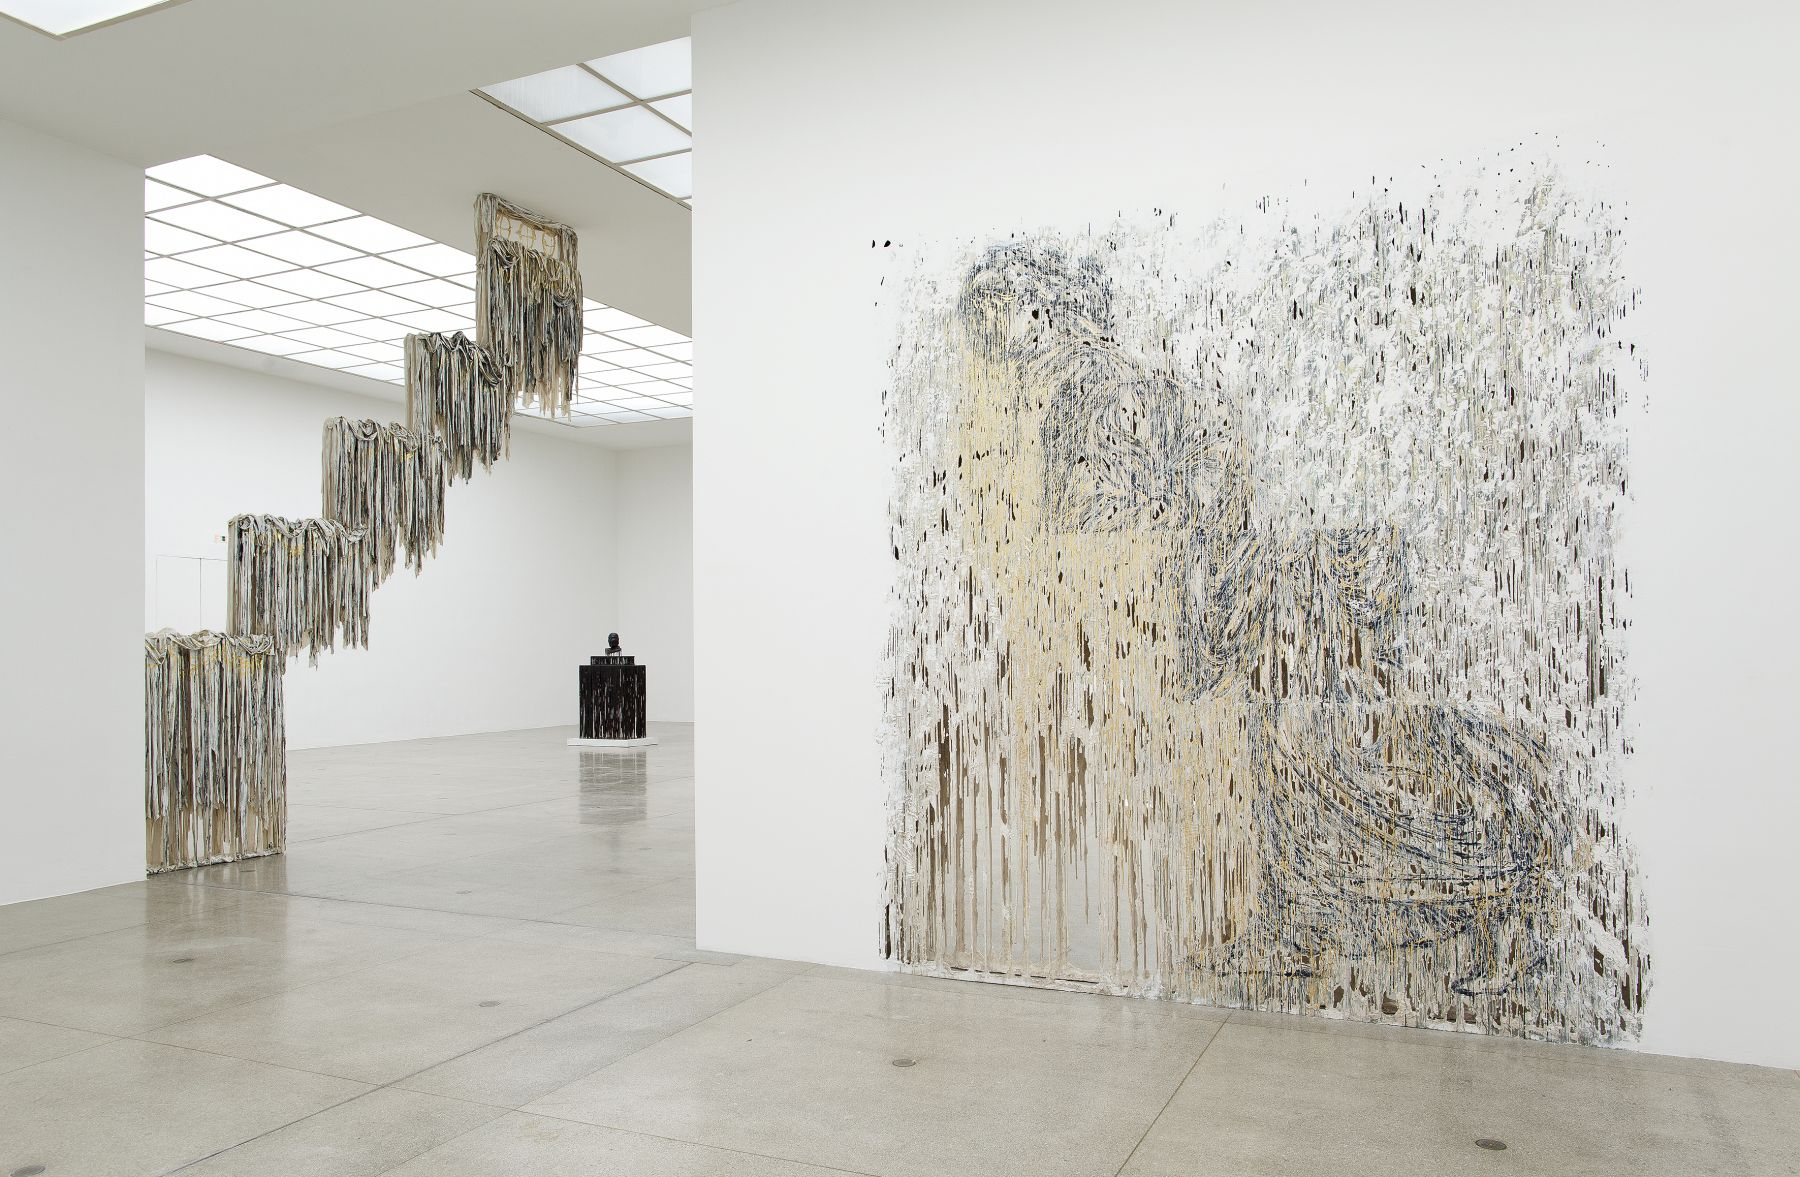 an exhibition view of sculptures and artworks by Diana Al-Hadid in a museum